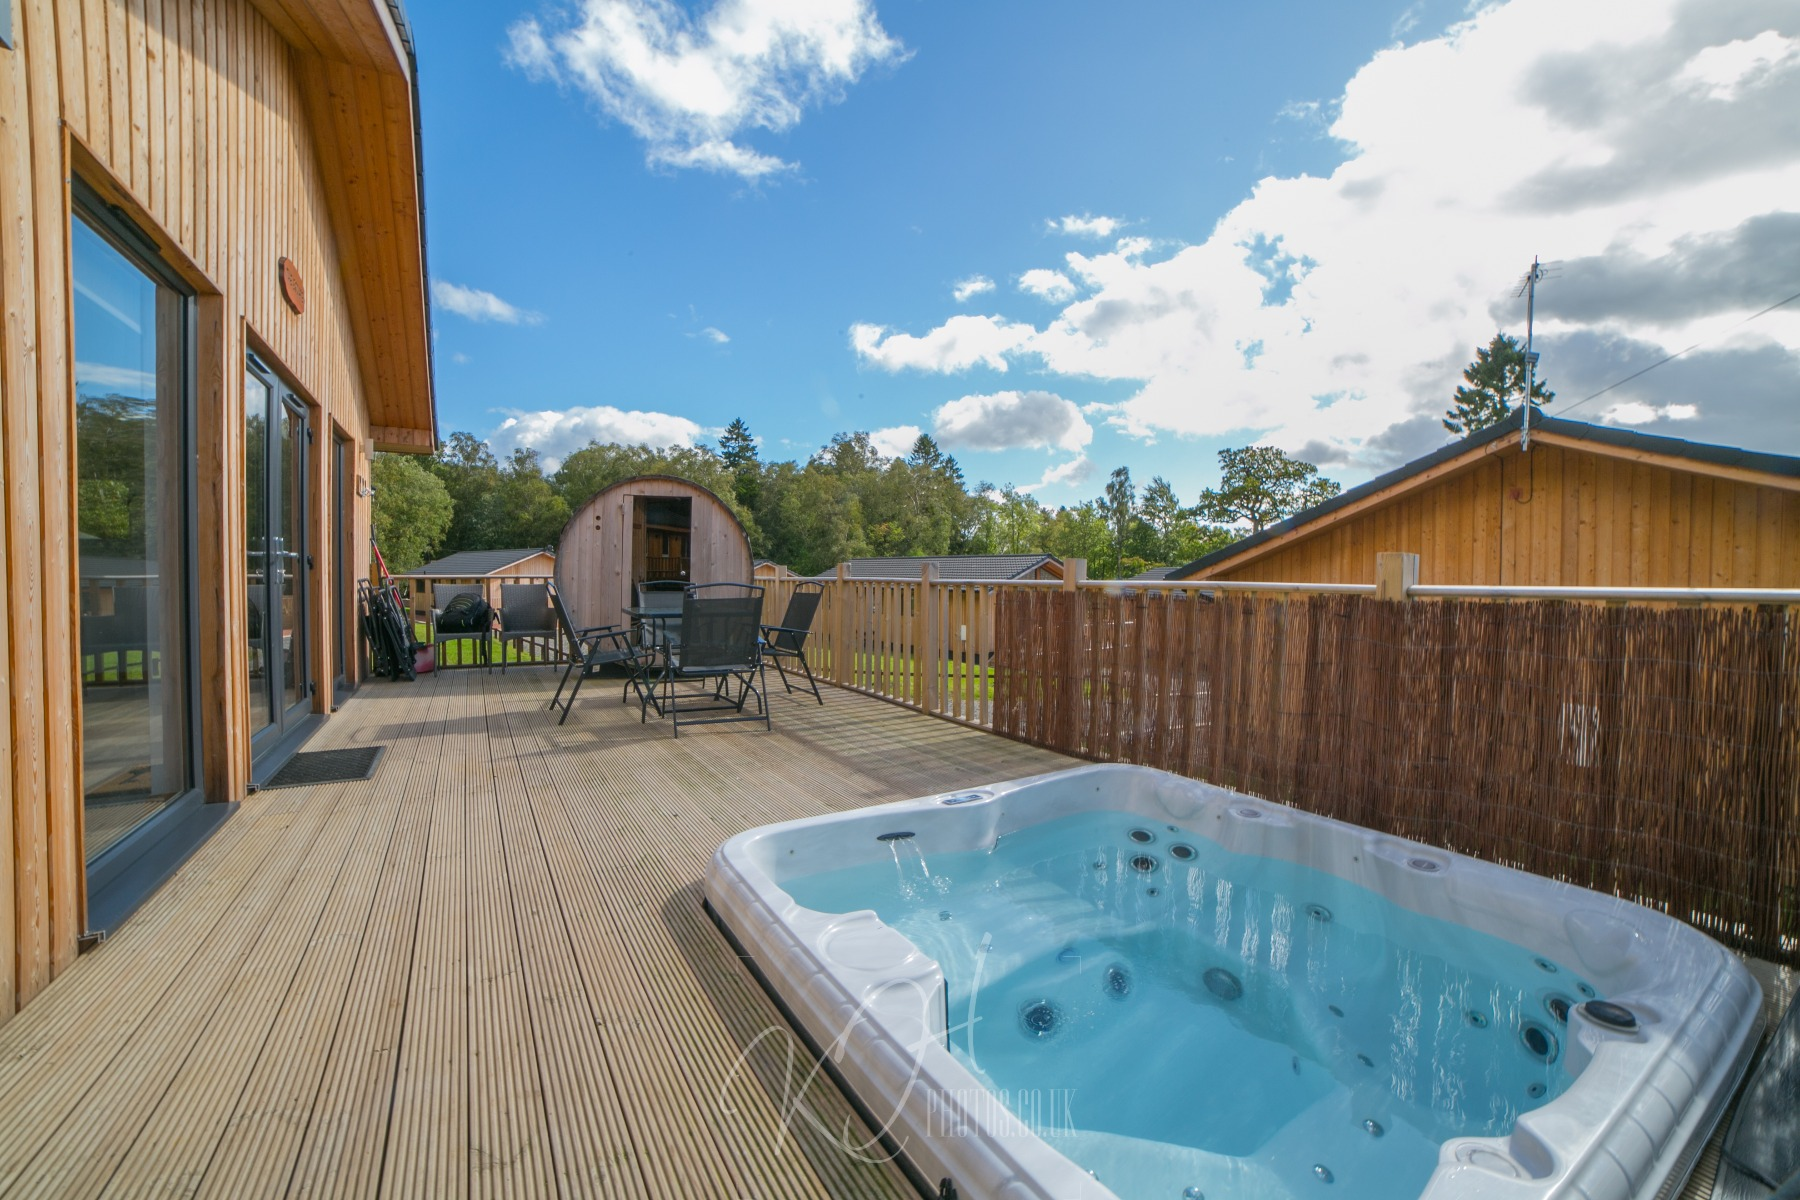 Hot Tub Holidays in the Northumberland National Park